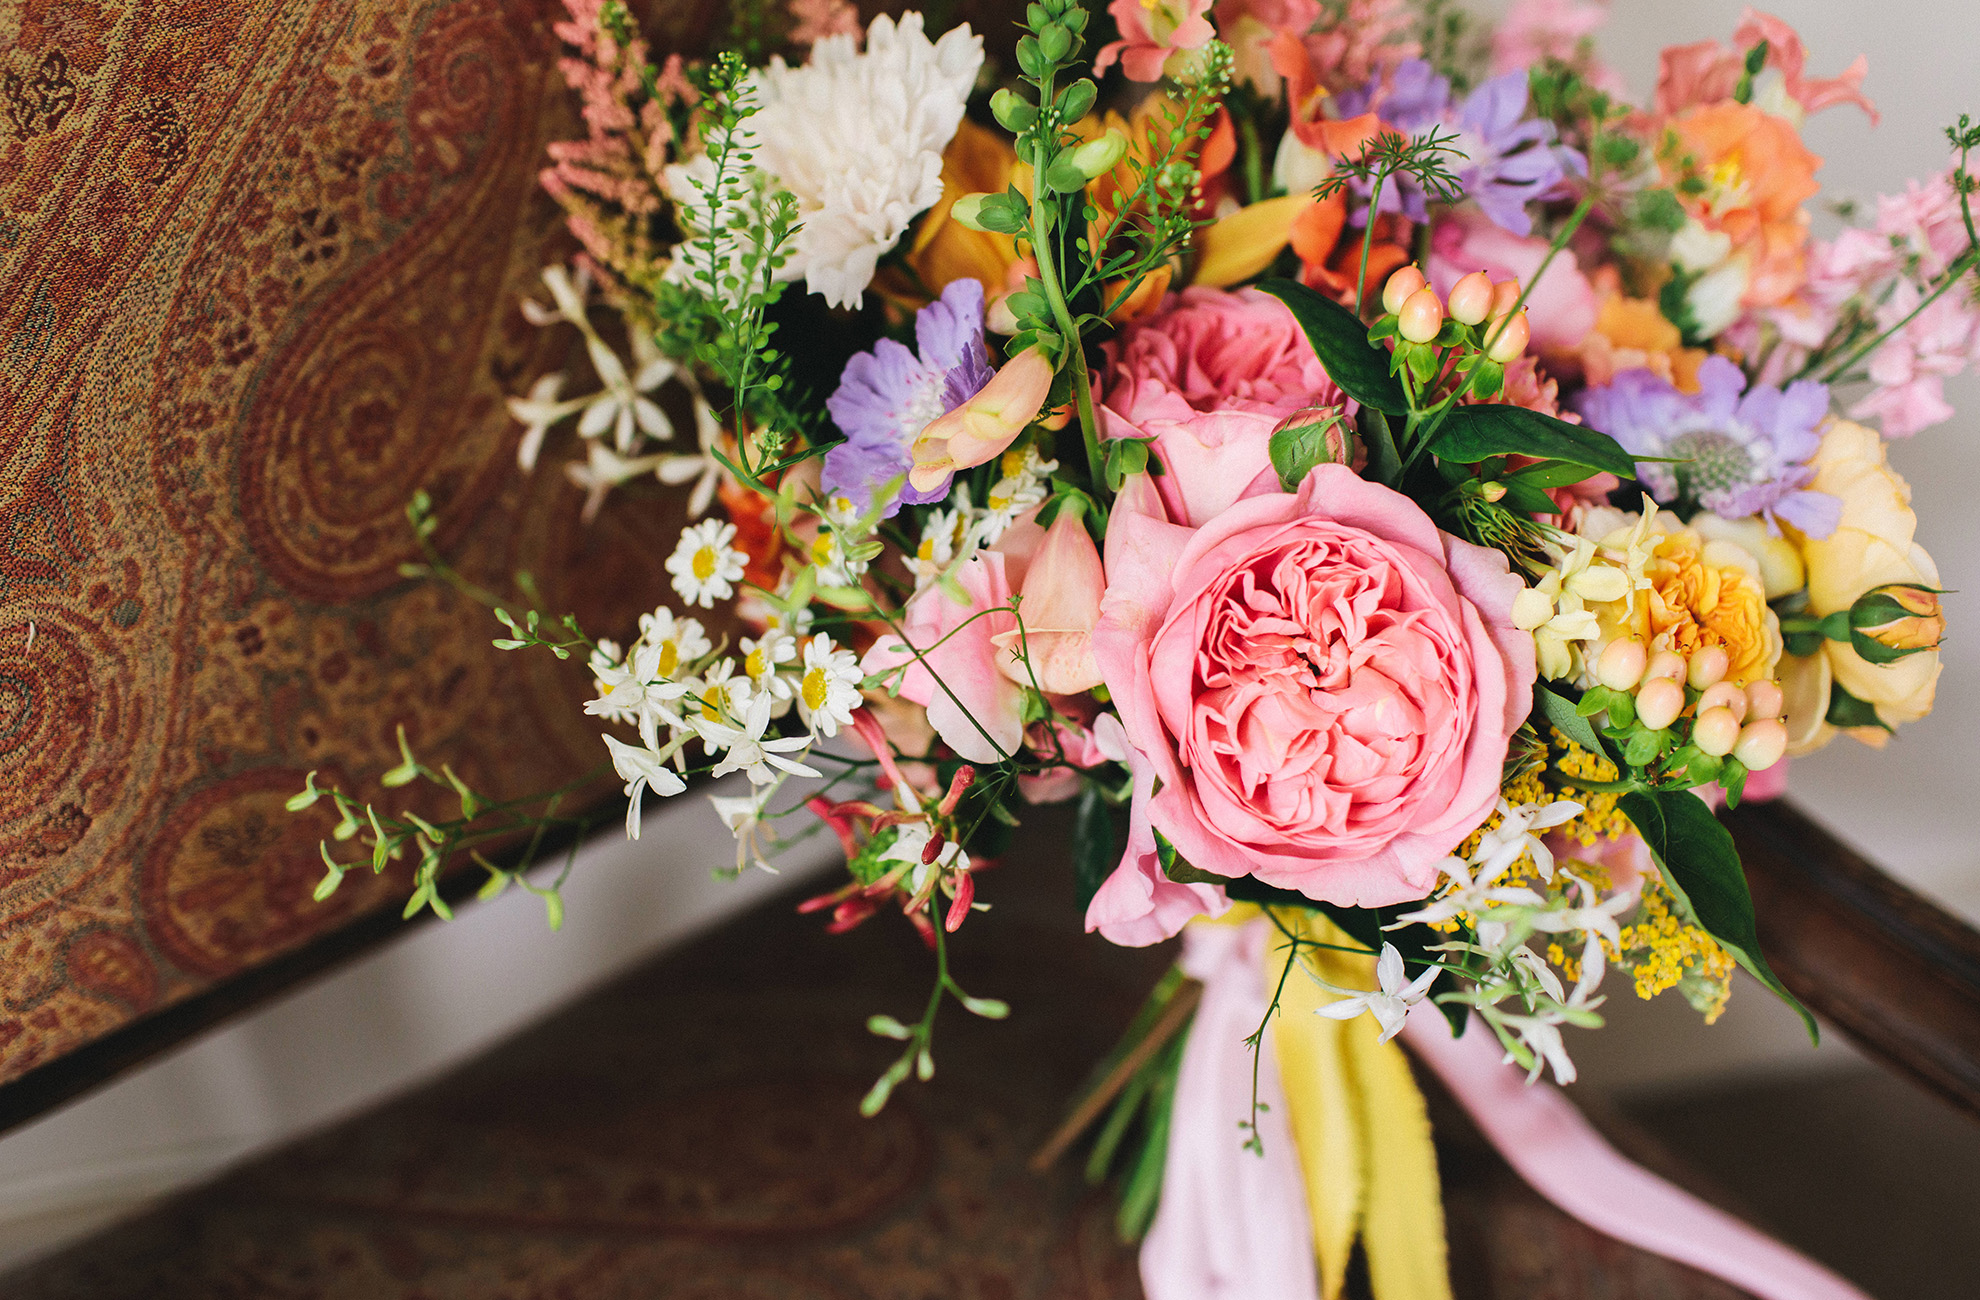 A vibrant summer wedding bouquet is perfect for a summer wedding at Combermere Abbey